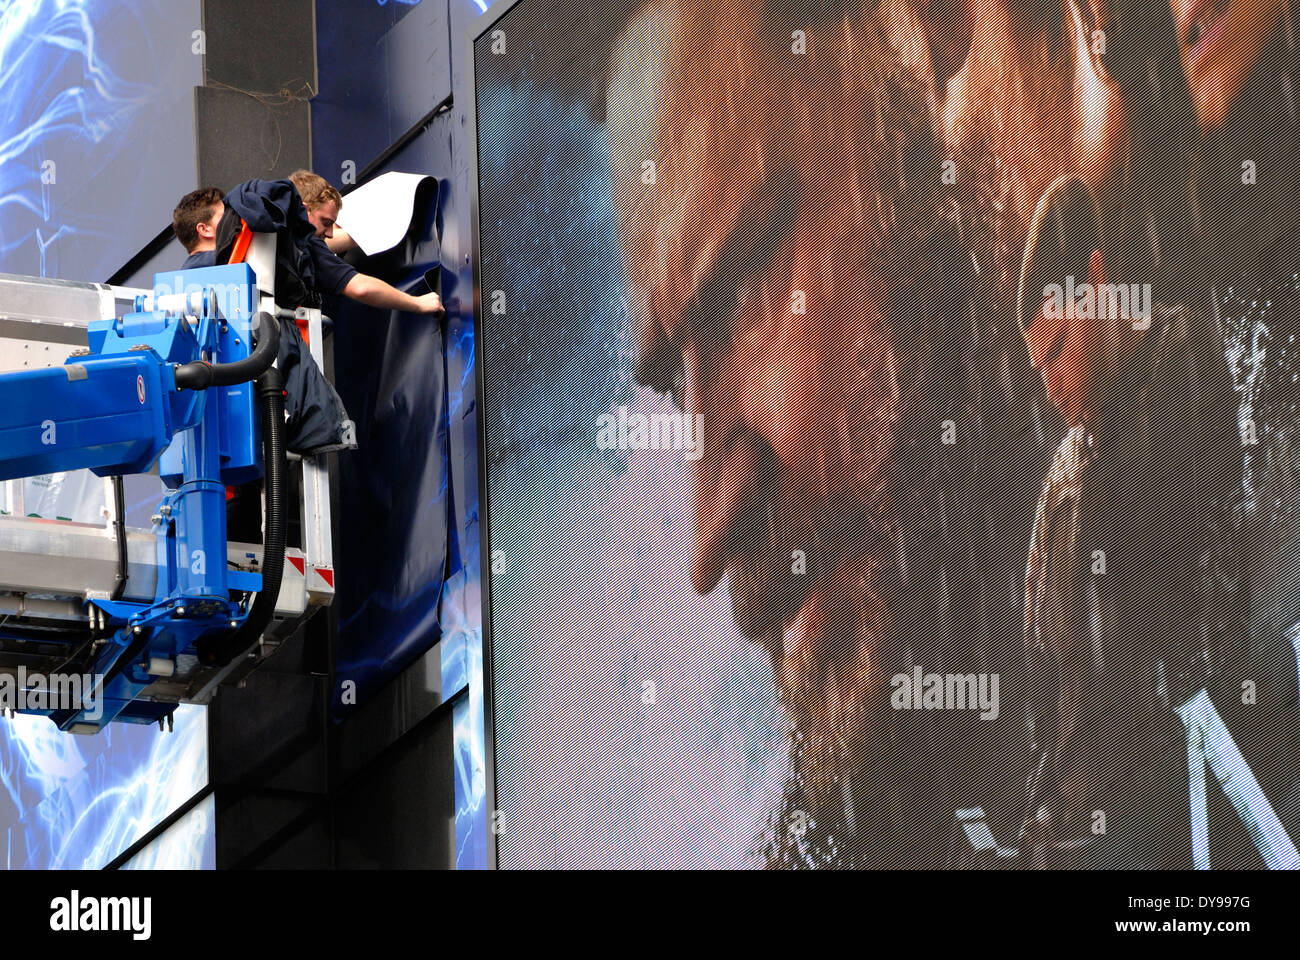 London, England, UK. Odeon Cinema, Leicester Square. Men sticking posters to facade for Noah film, 2014. - Stock Image